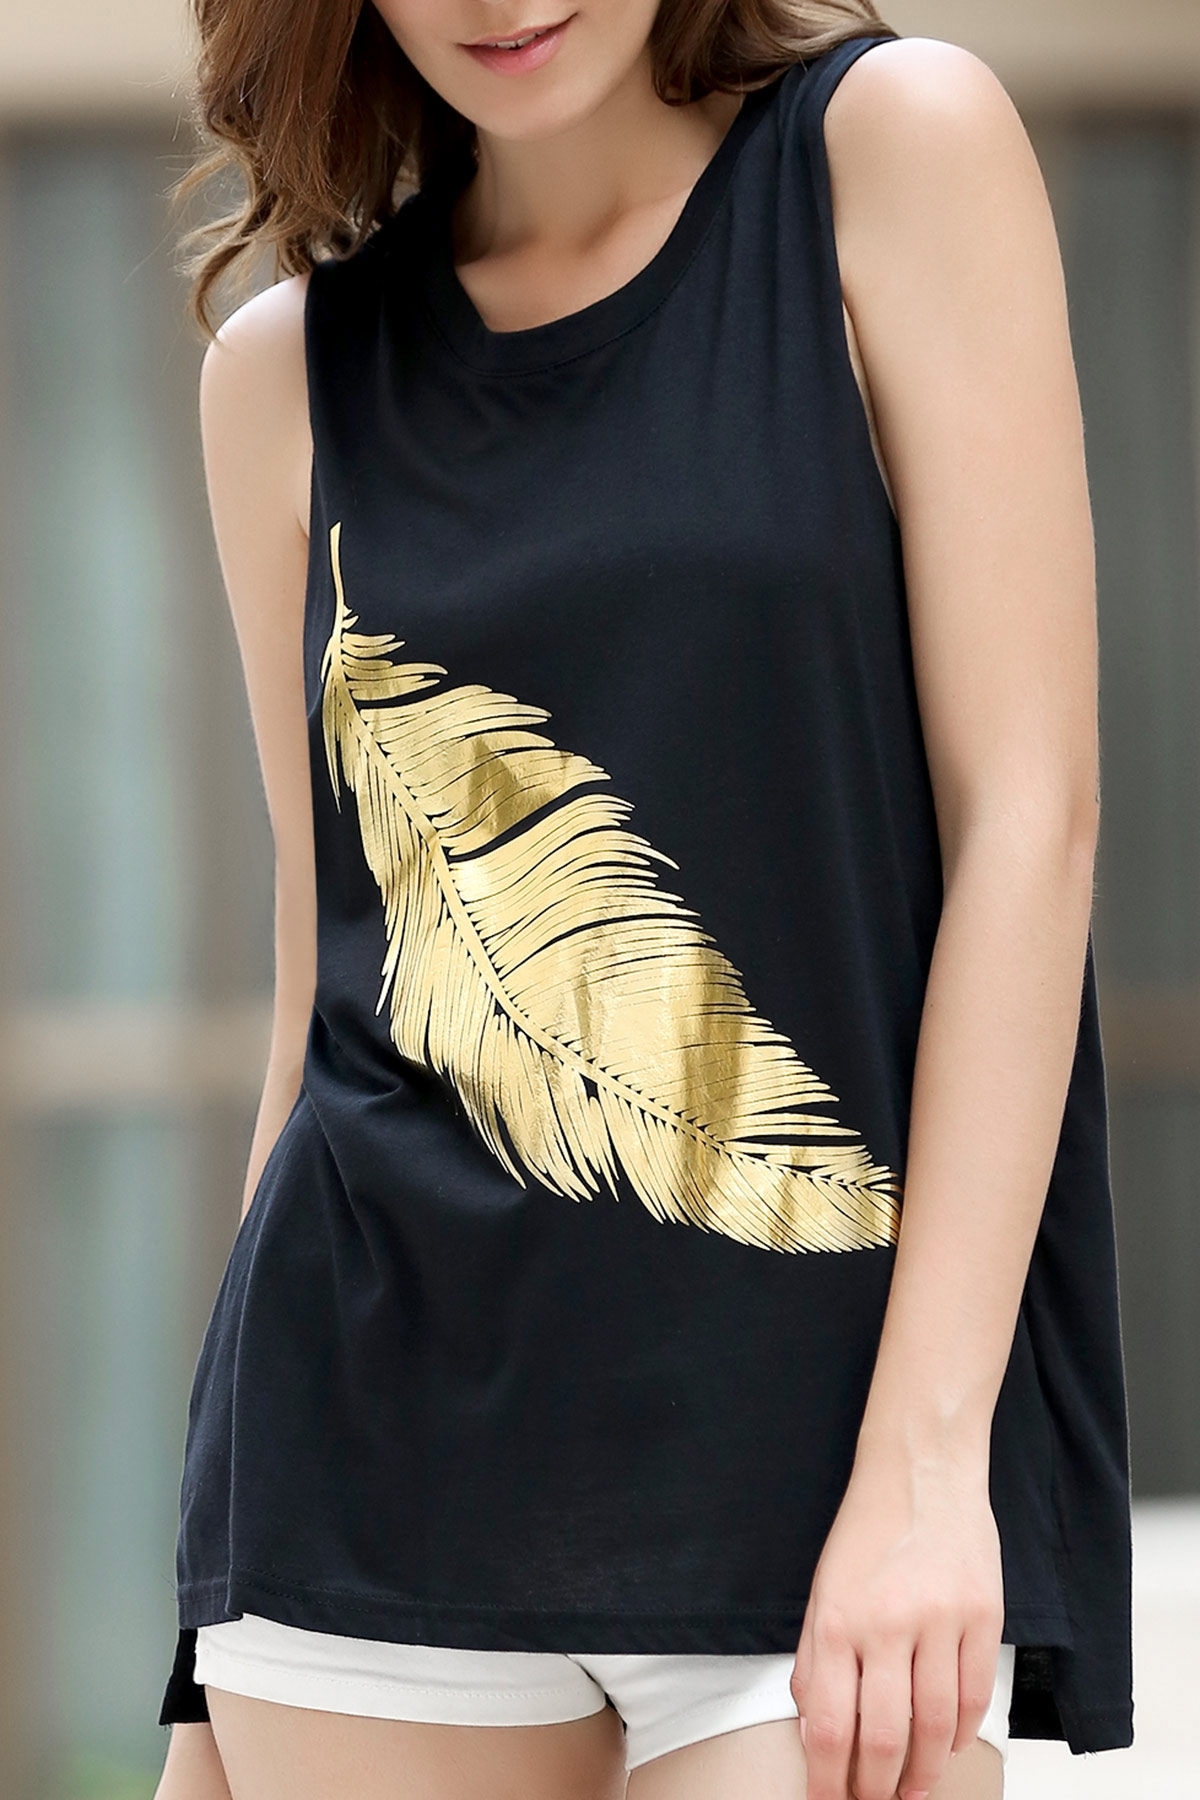 Sparkly Feather Pattern Black Tank Top